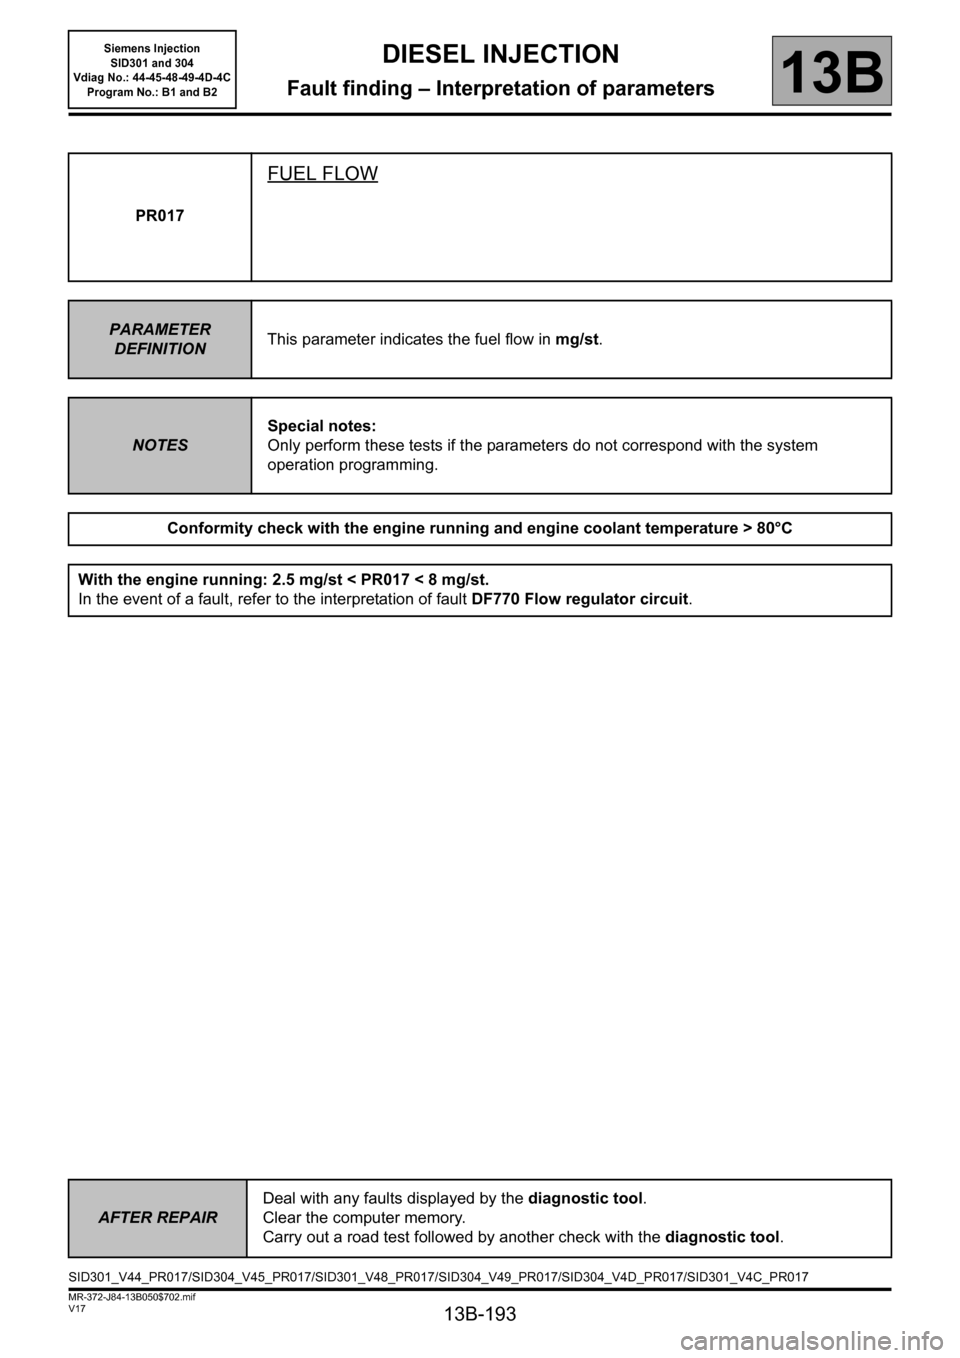 RENAULT SCENIC 2011 J95 / 3.G Engine And Peripherals Siemens Injection Workshop Manual, Page 193